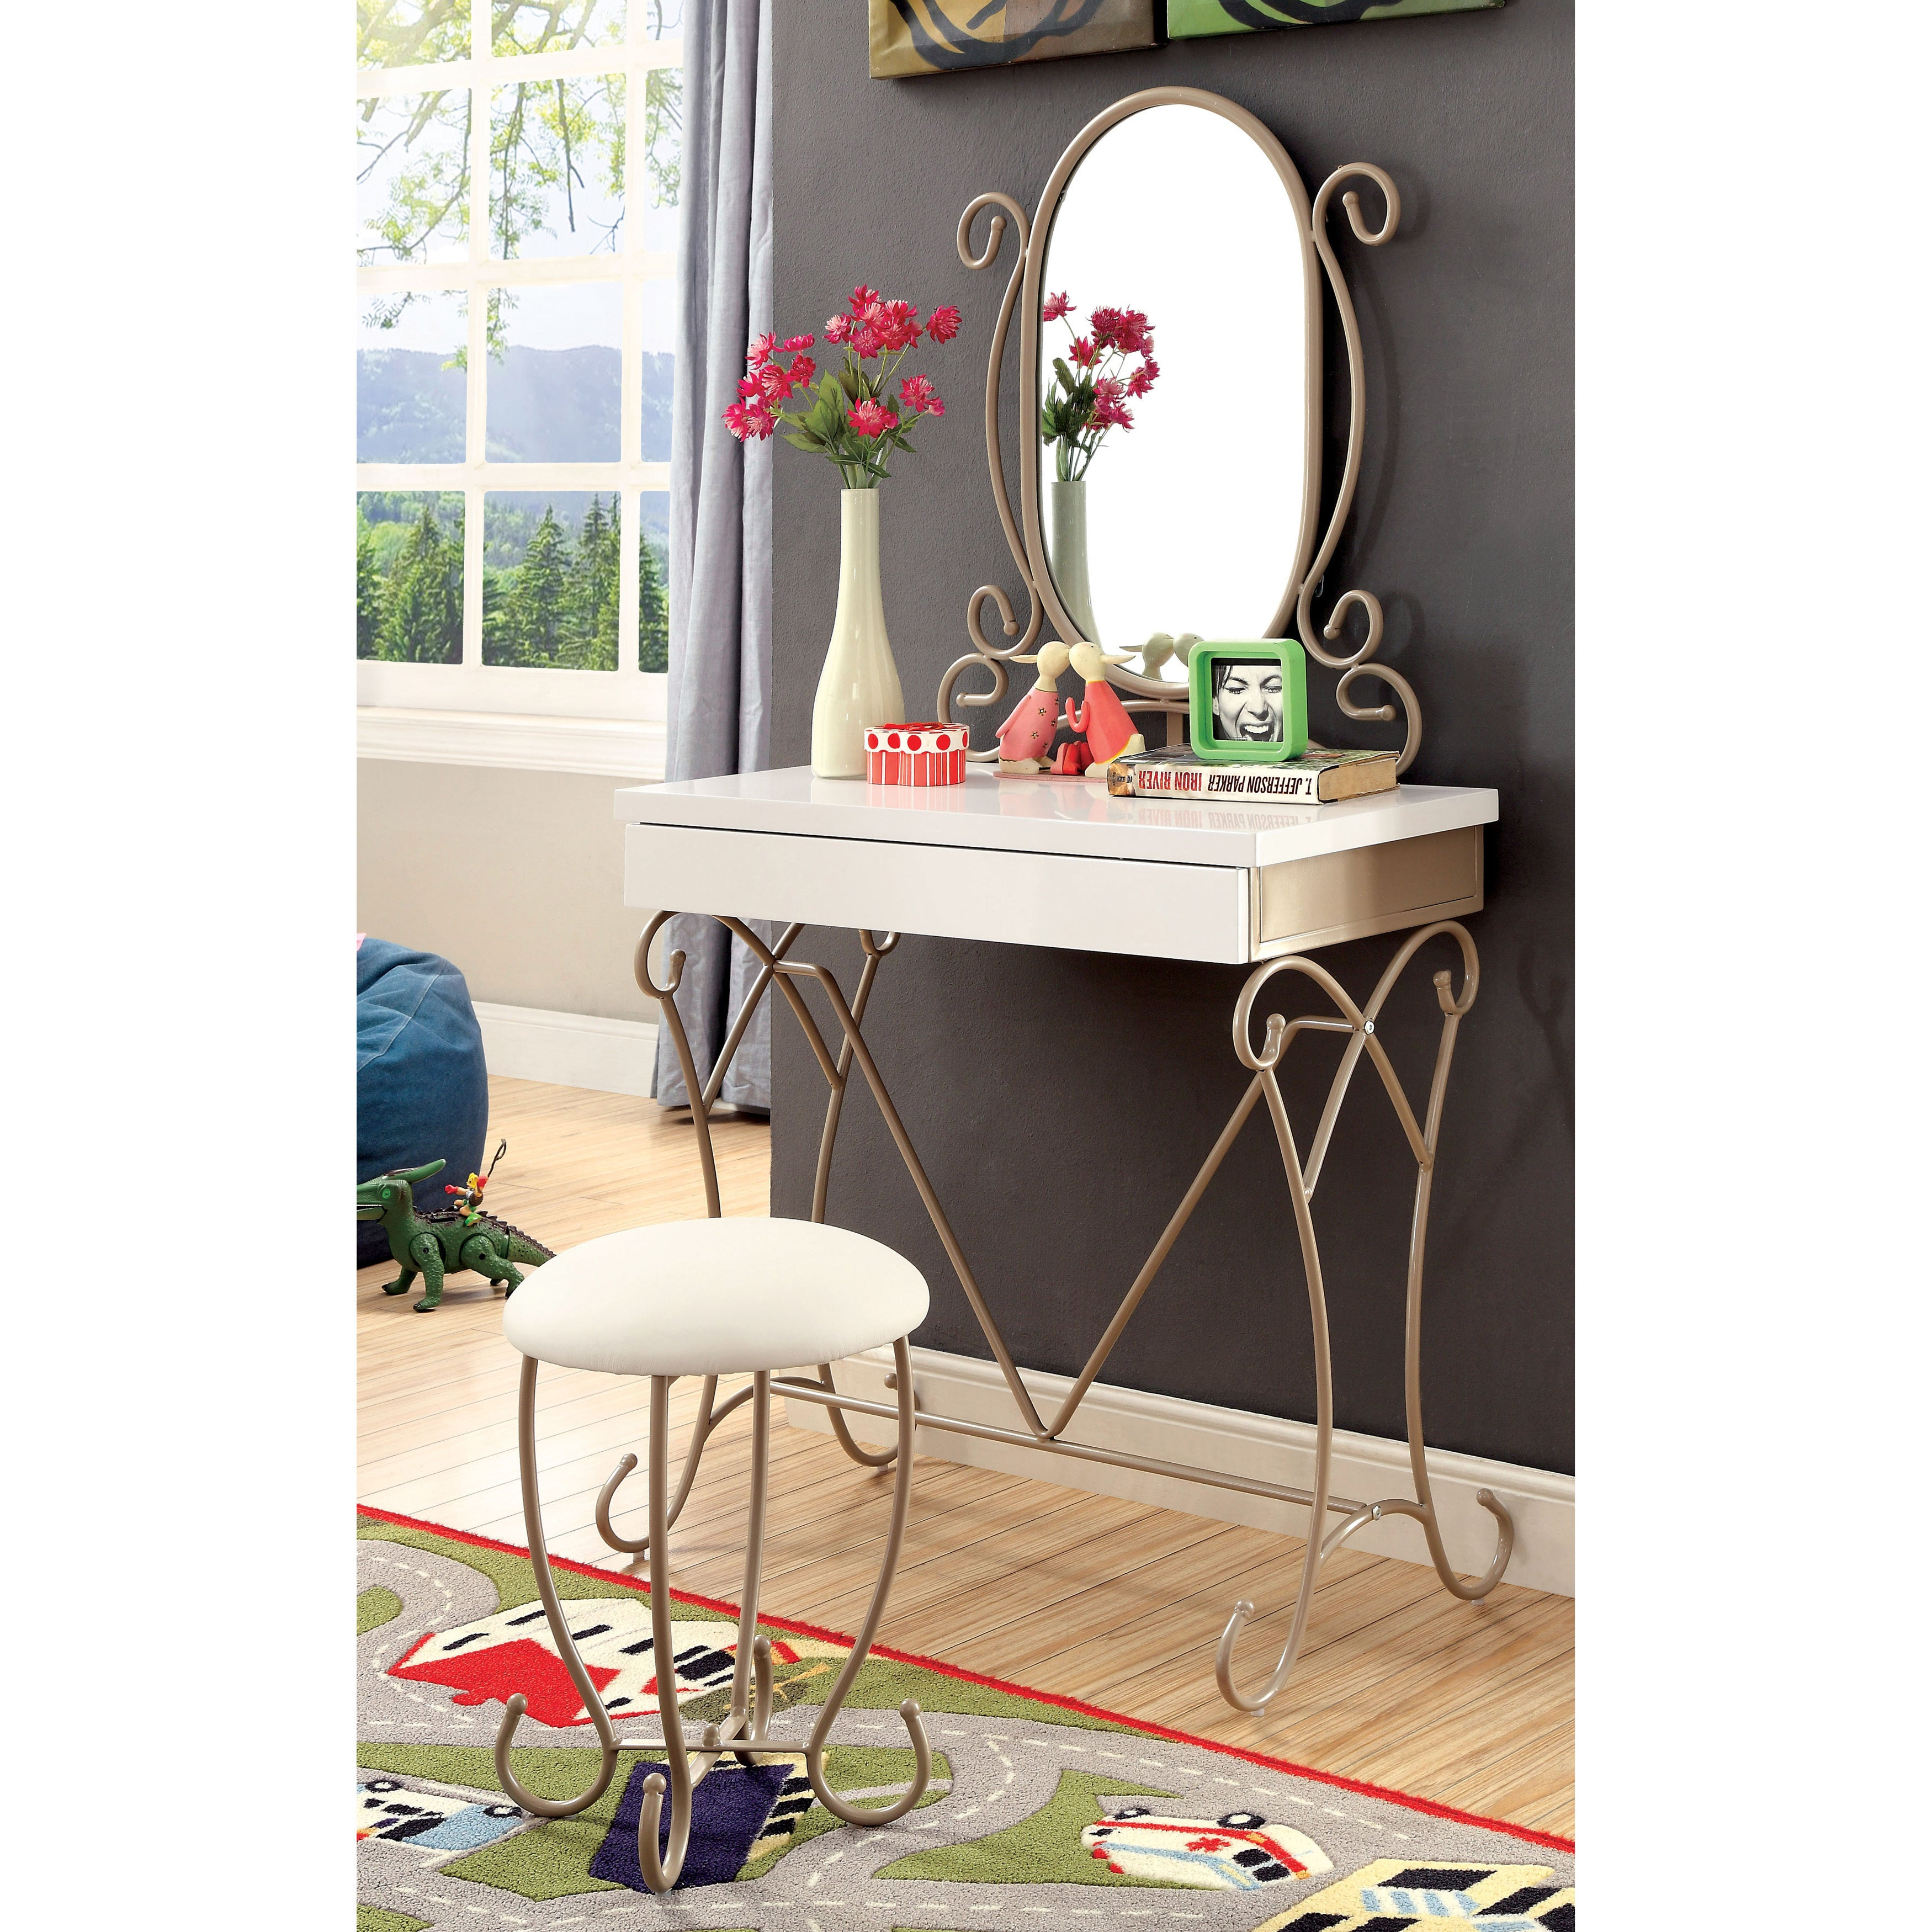 Furniture of America Princess Dream 2-piece Vanity with S...